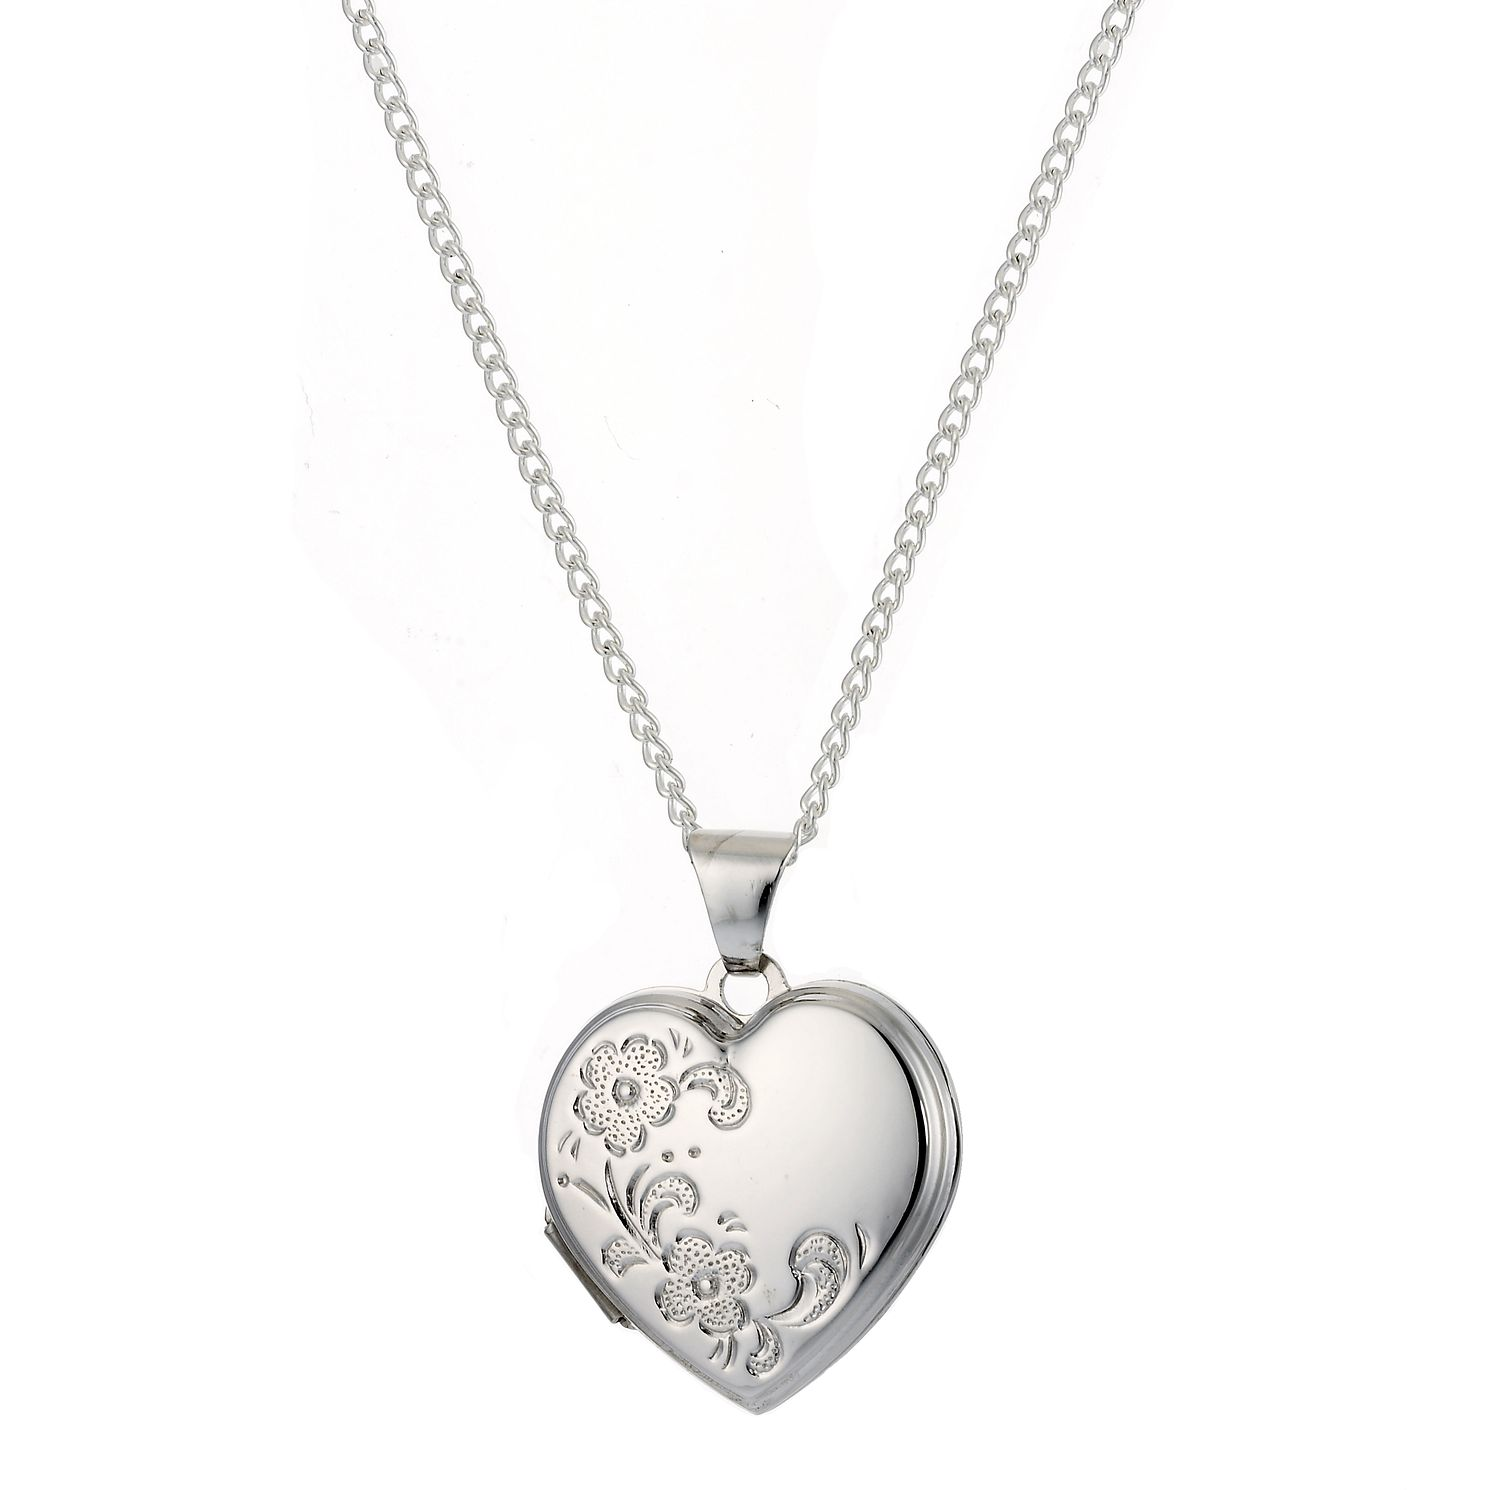 holding for prcode vps finished heart silver precious window lockets sterling items locket design jewellery